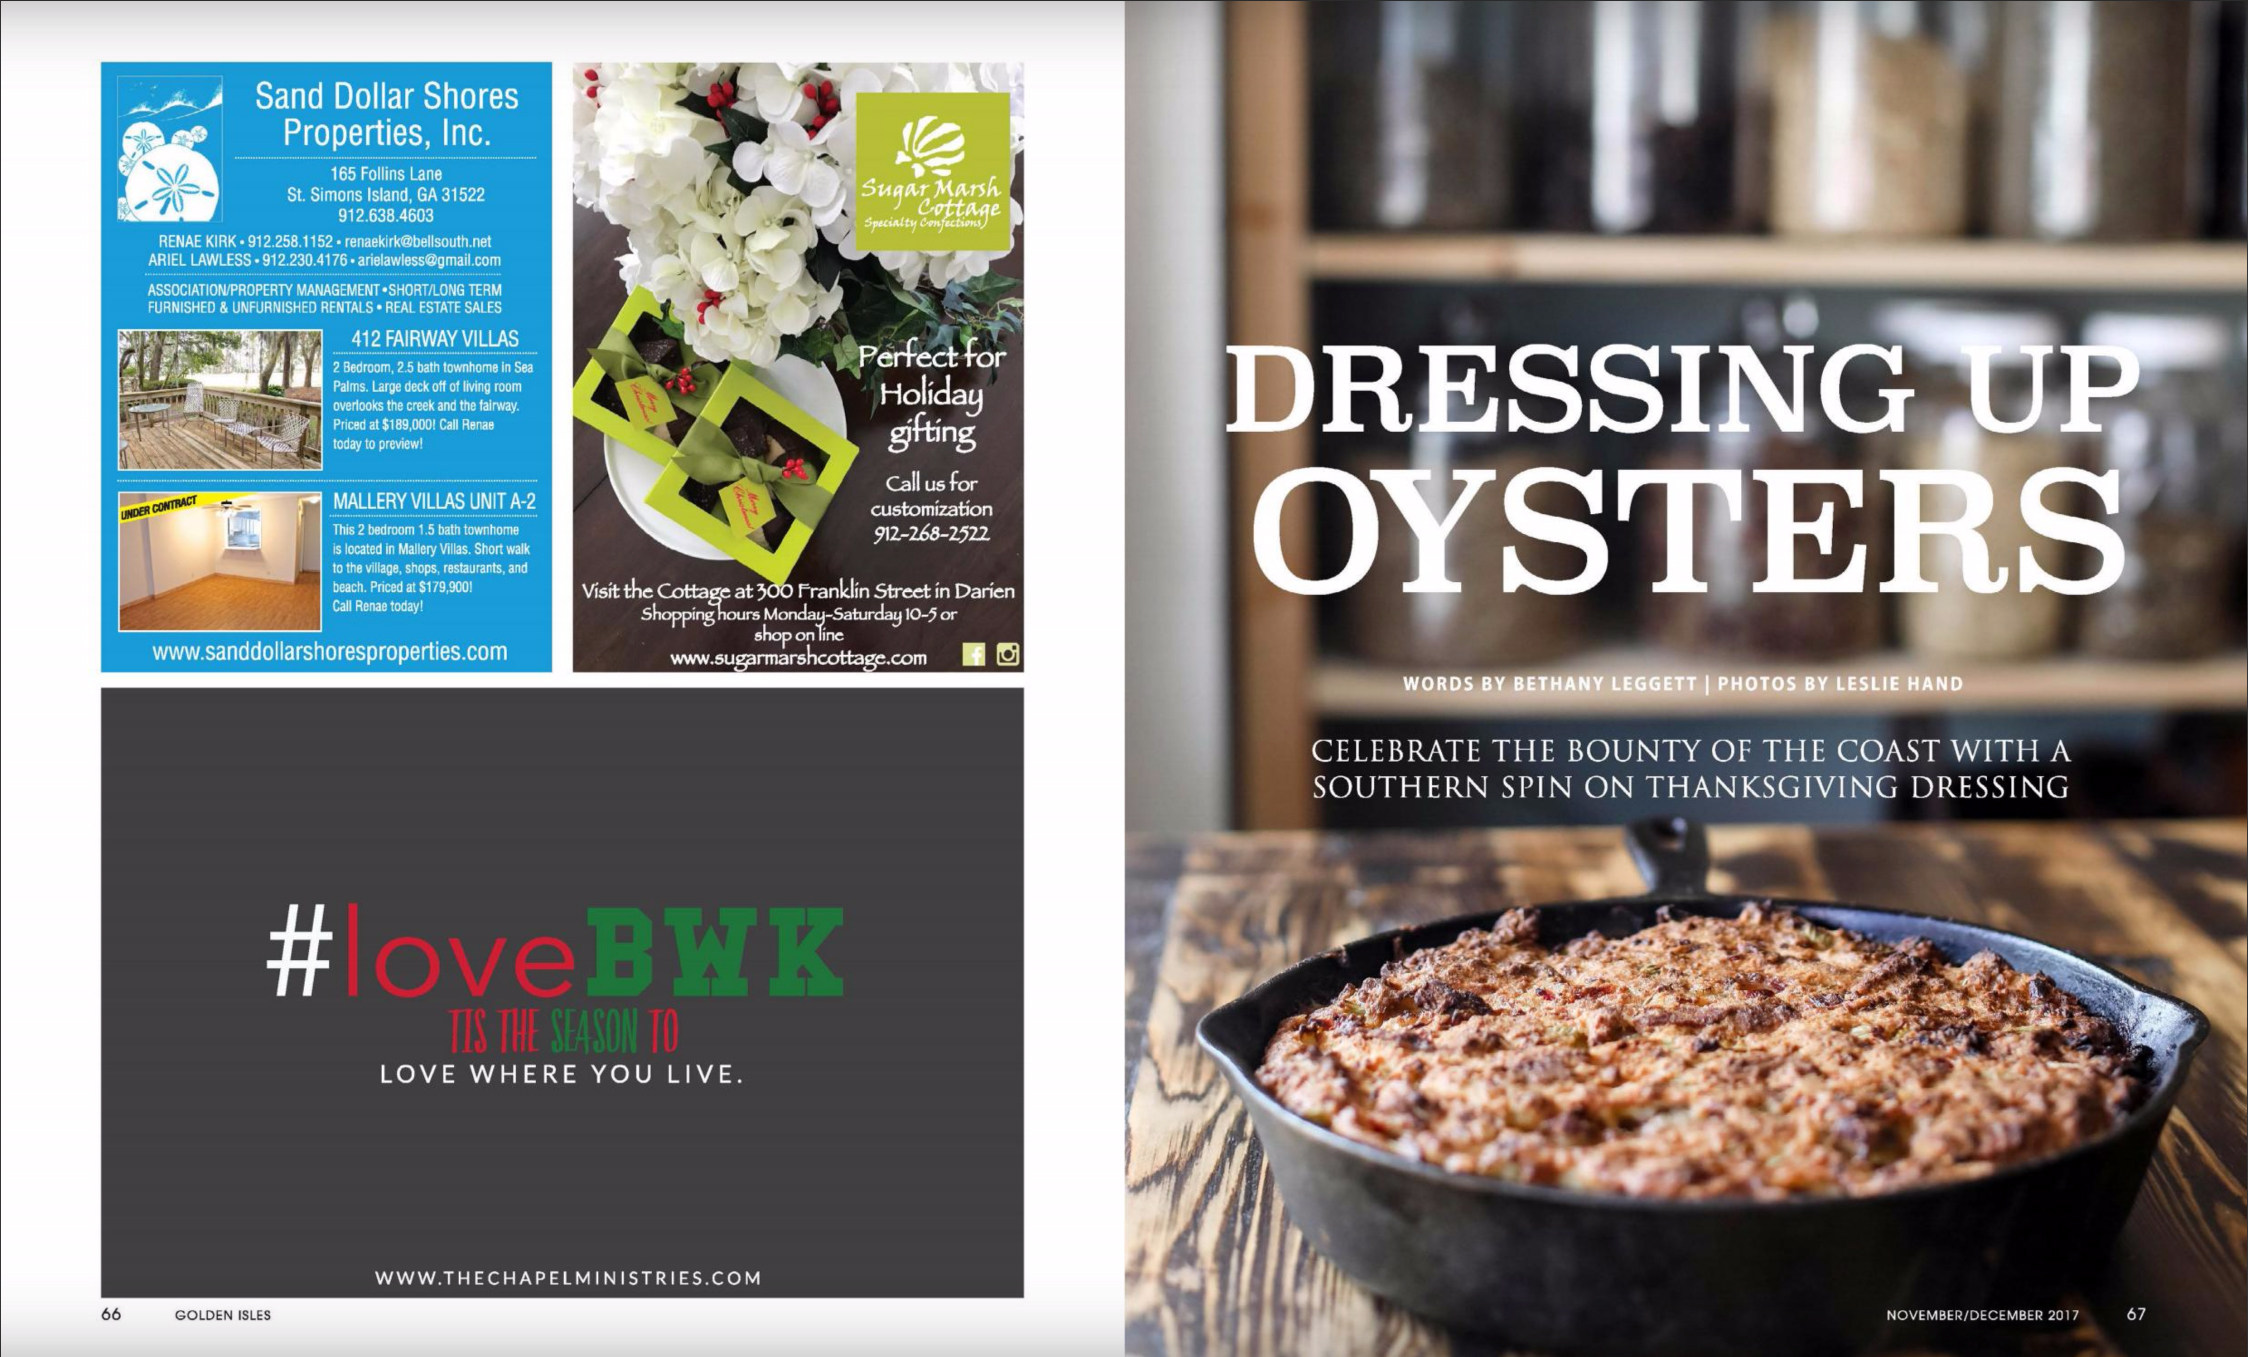 Magazine spread featuring oyster dressing crafted by Chef Matthew of the Farmer and the Larder in Brusnwick, GA